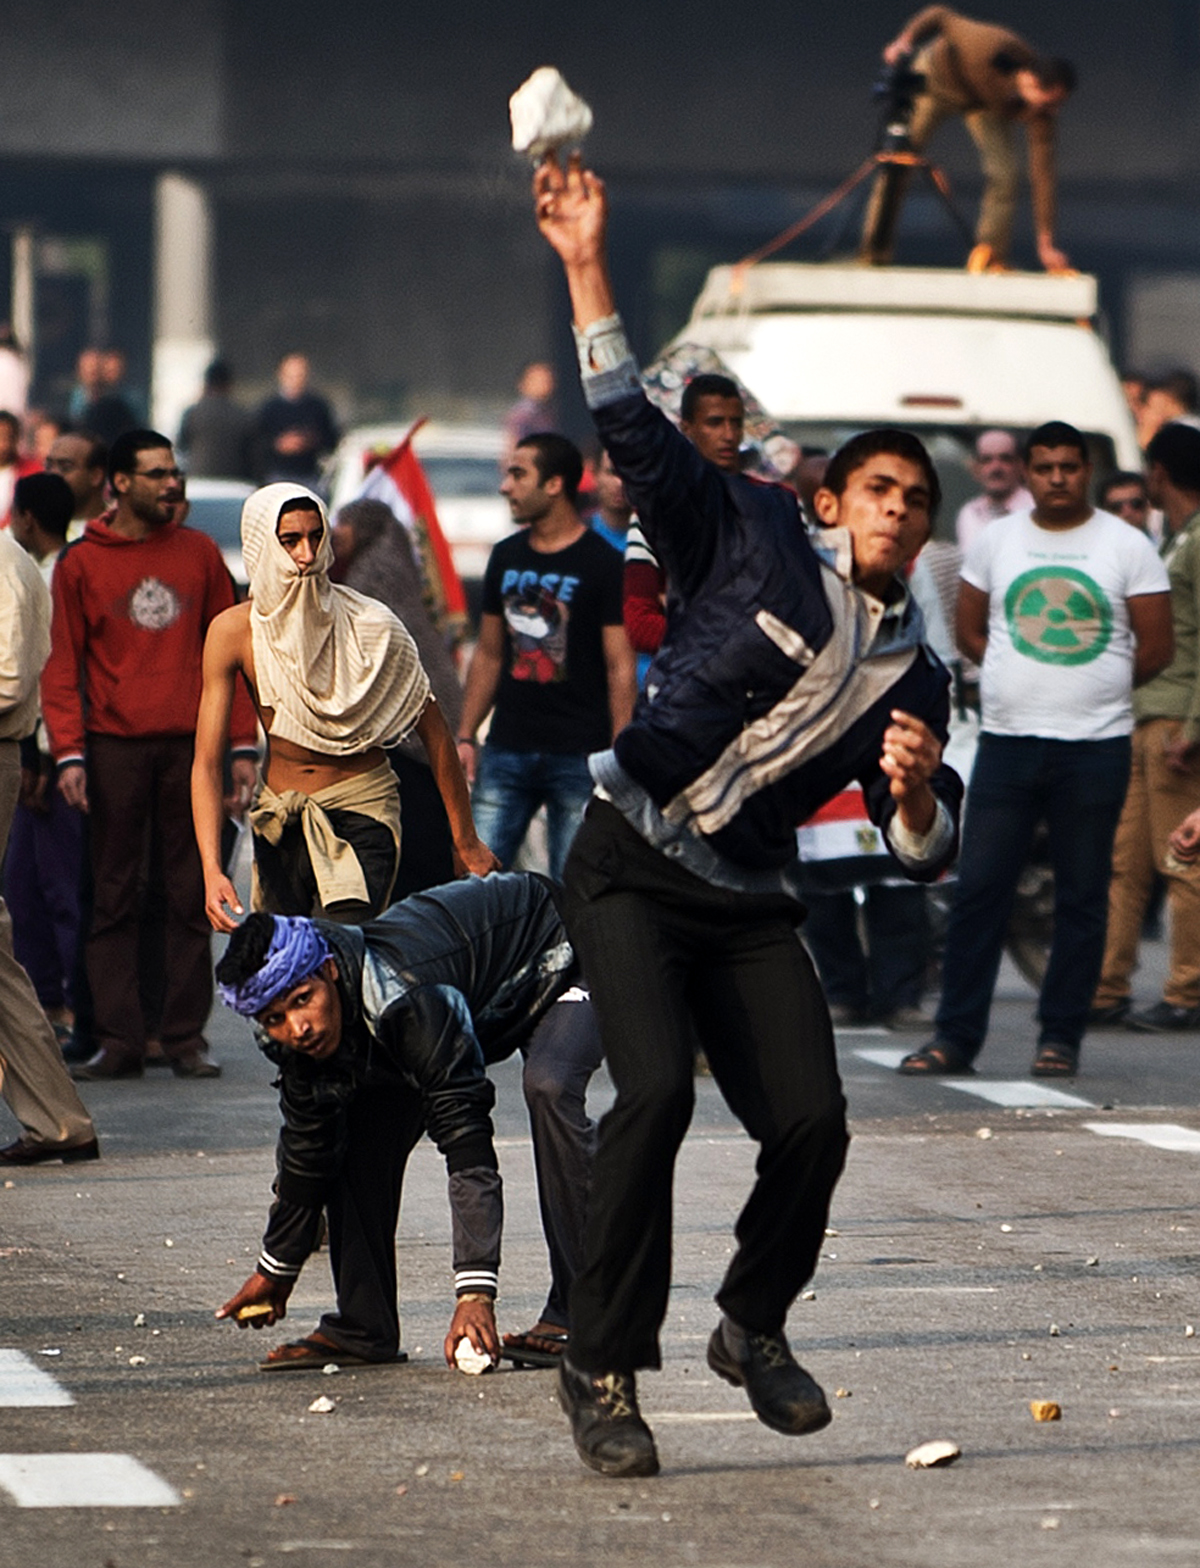 Egyptian supporters of the military regime throw stones towards anti-regime protesters (unseen) during clashes in Cairo's Tahrir Square on November 19, 2013 in Cairo, Egypt.  ( AFP PHOTO/GIANLUIGI GUERCIA)